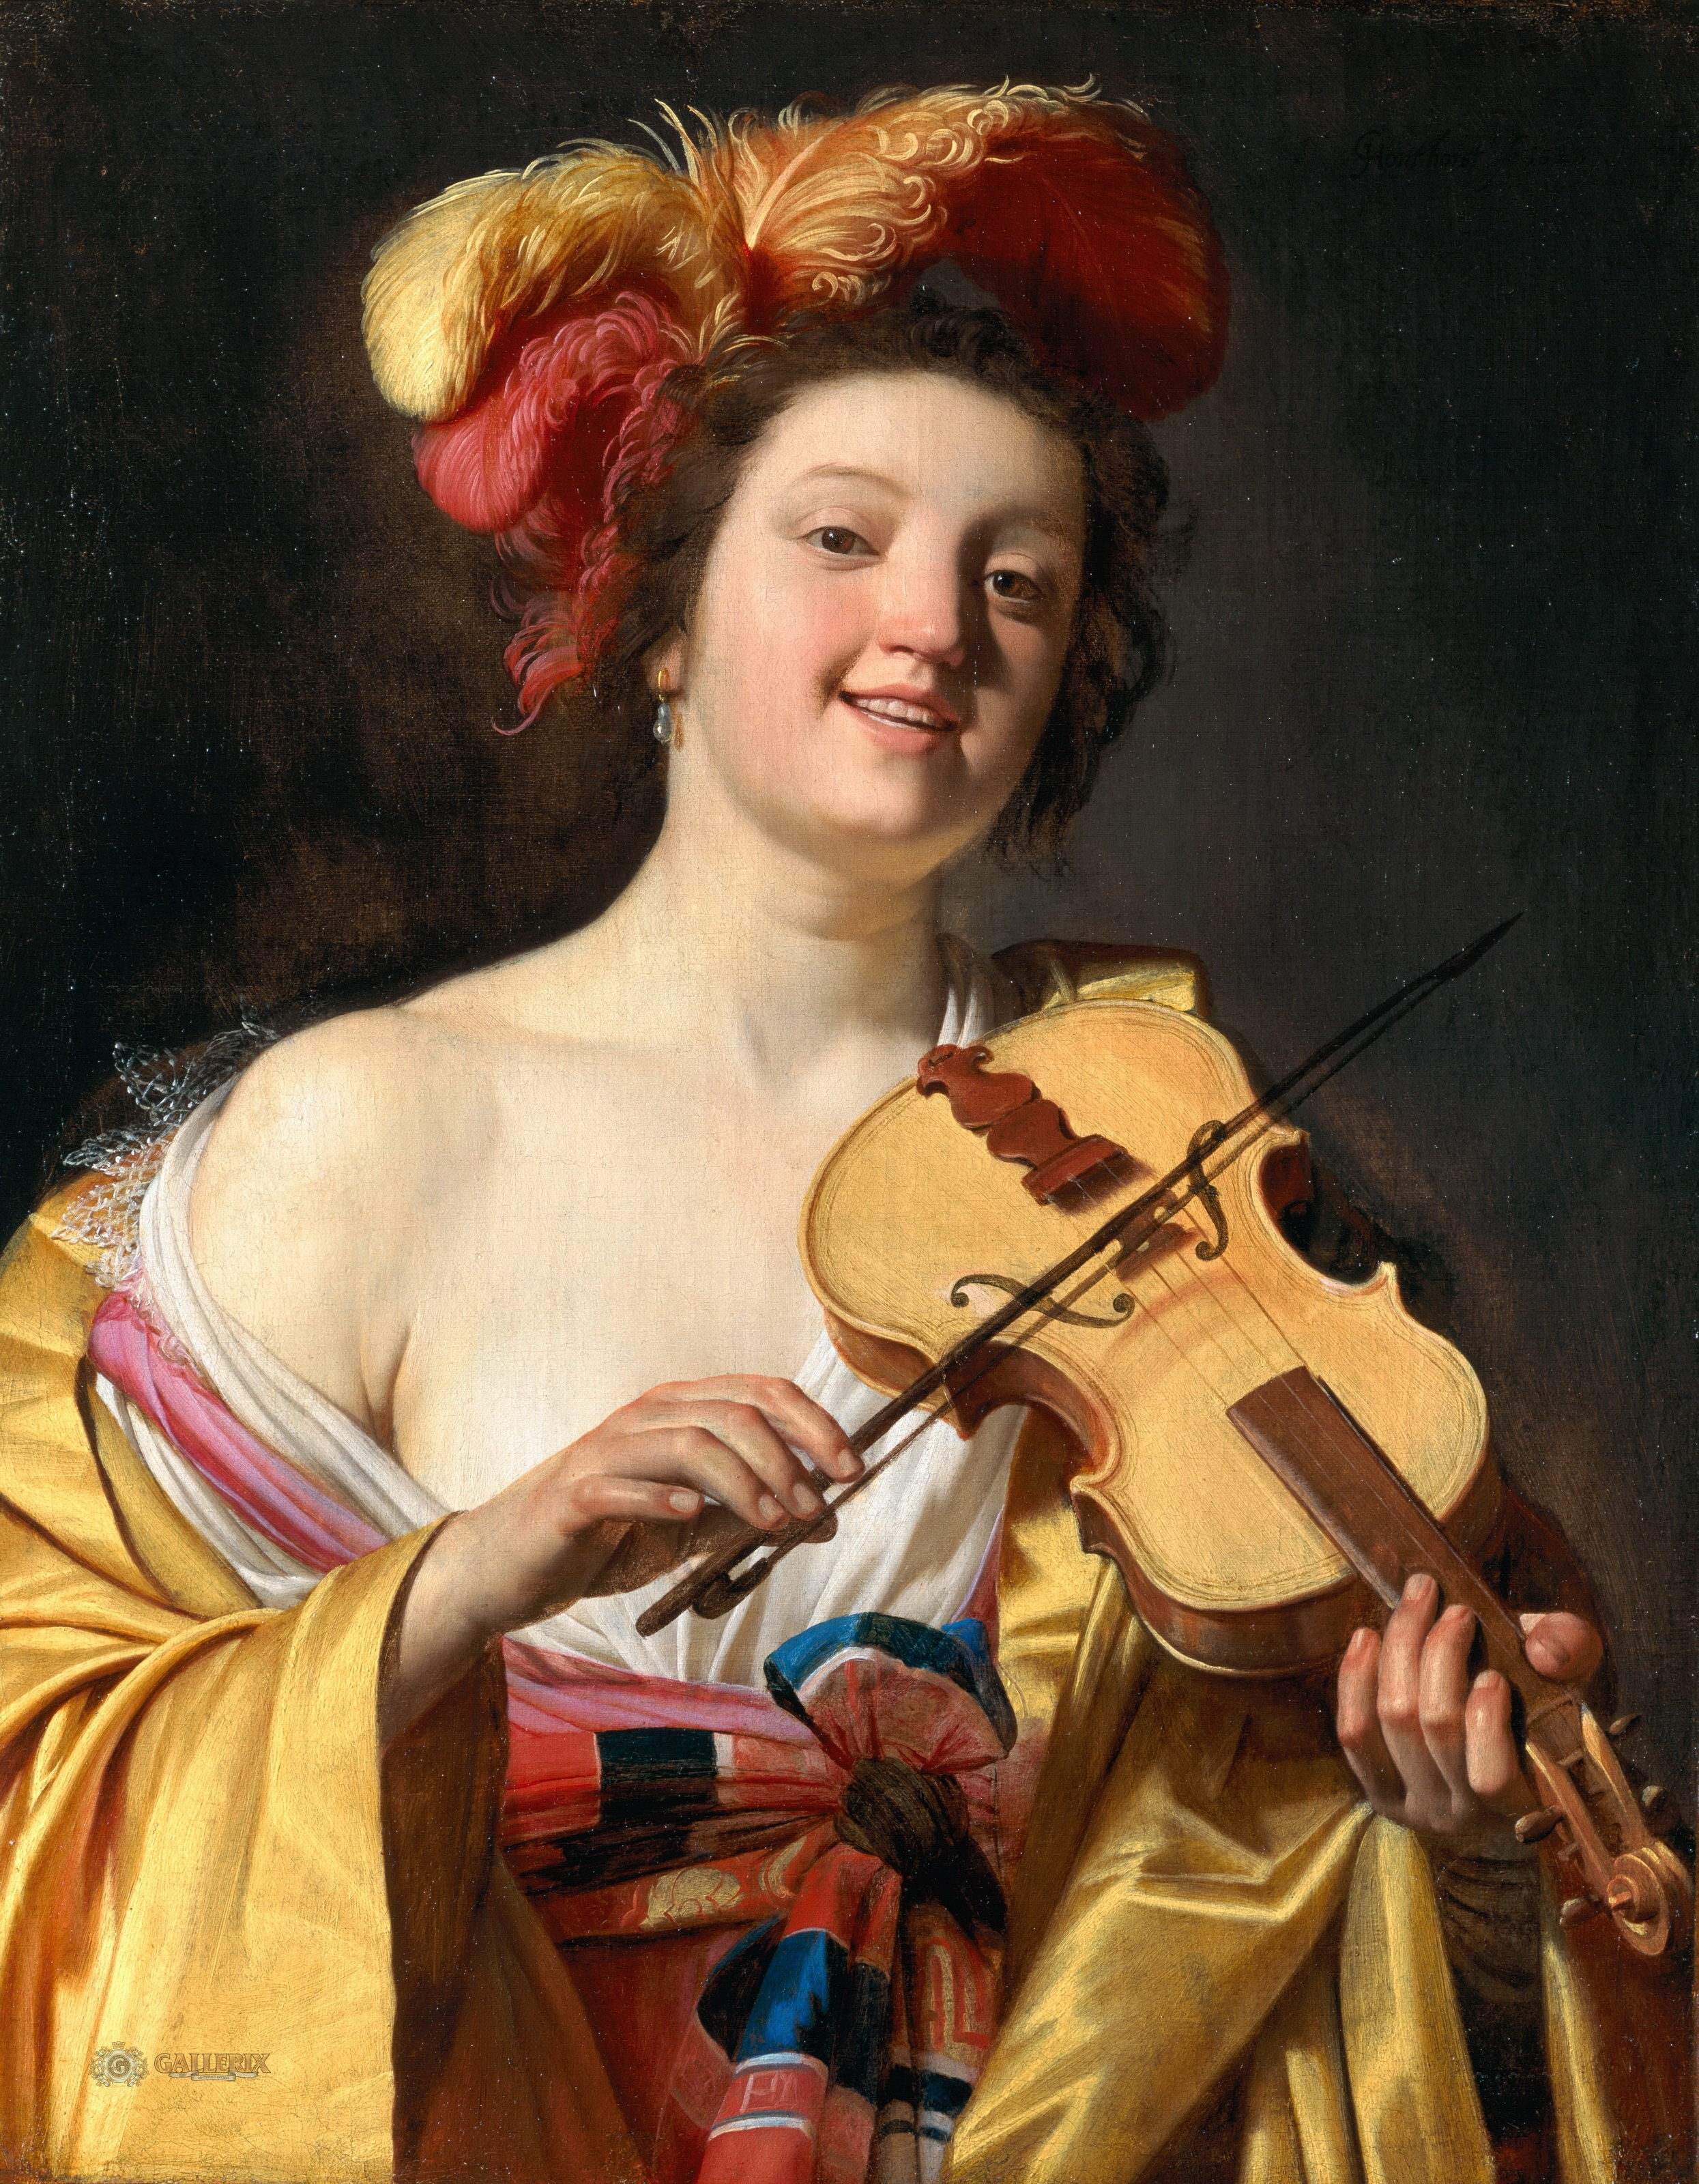 Gerrit van Honthorst - A Woman Playing the Violin [1626]